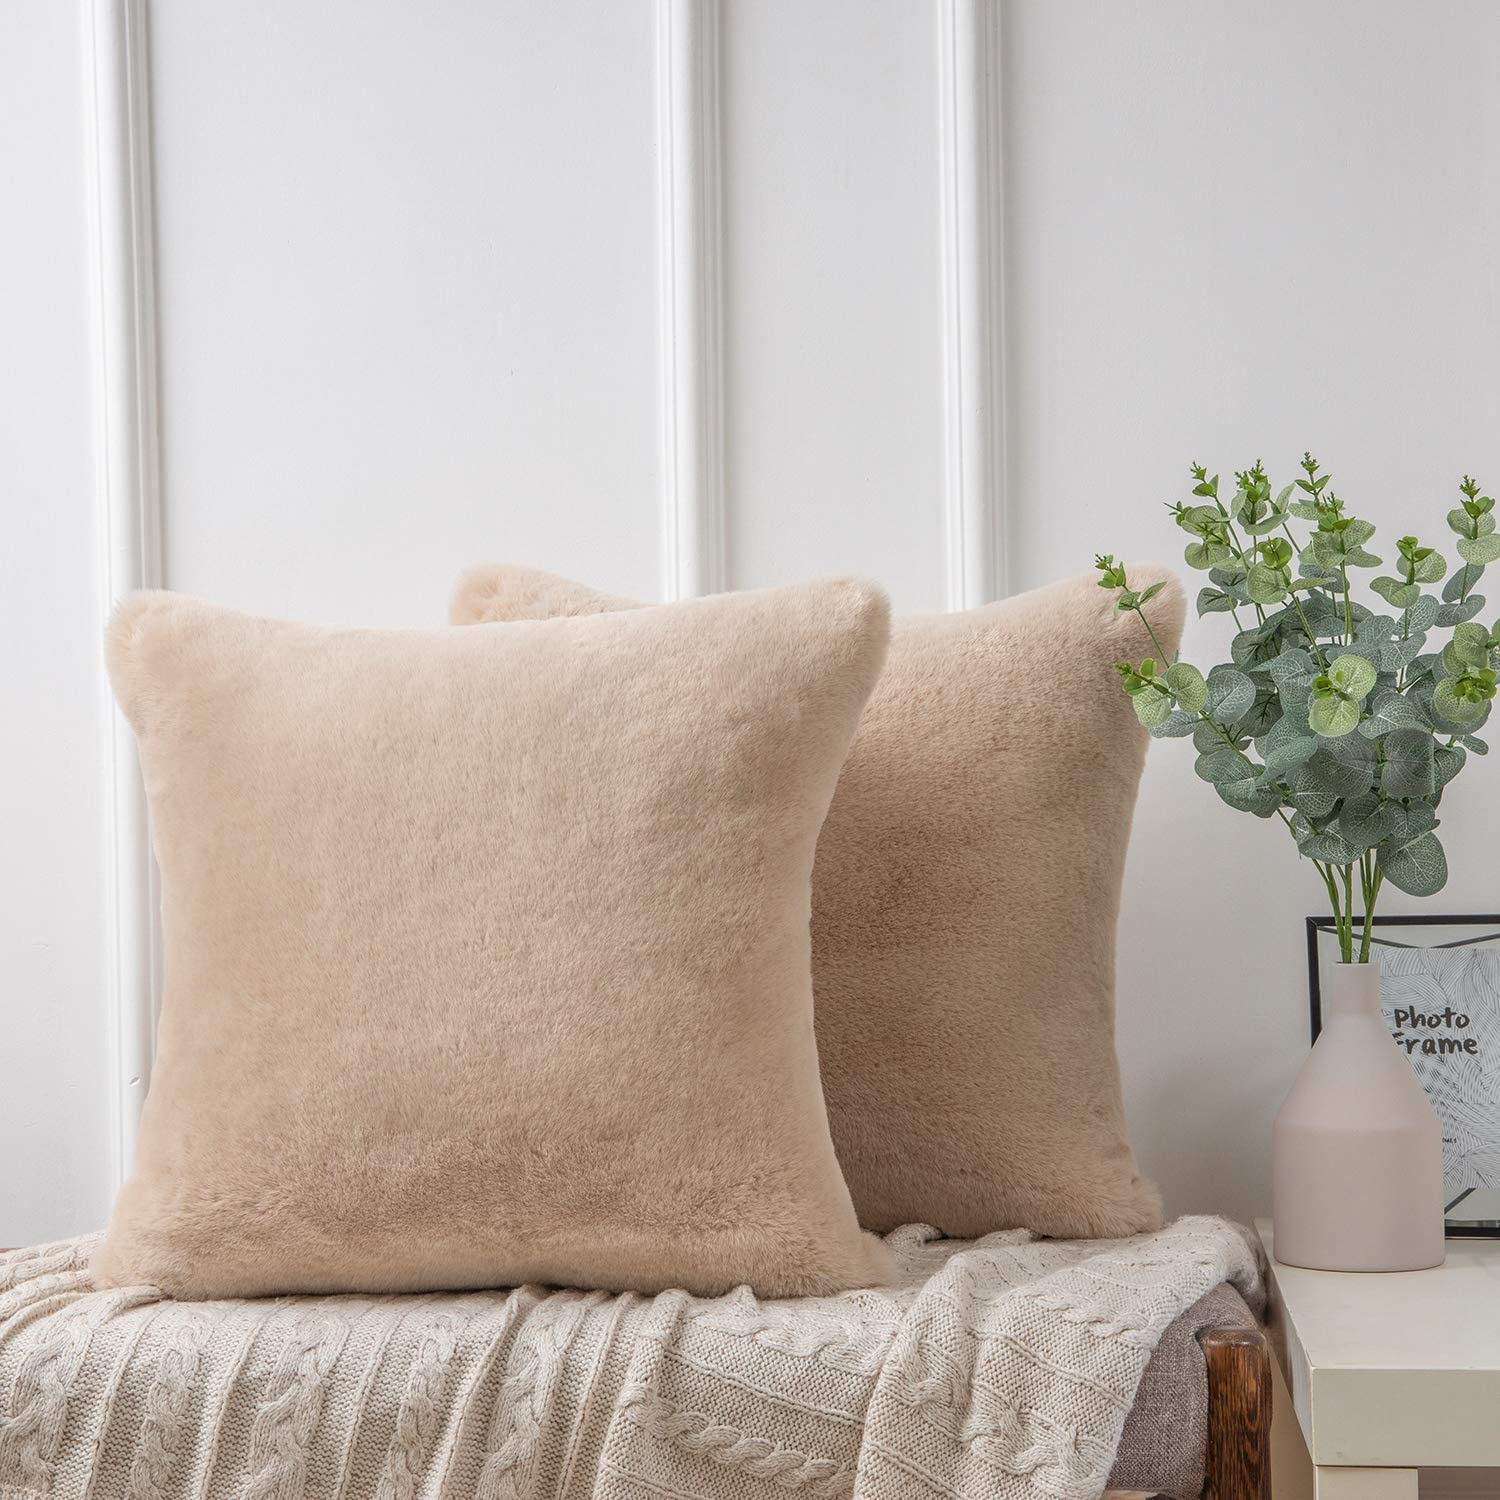 Ashler Ultra Soft Throw Pillows Faux Decora 2 of Rabbit New Shipping Free Shipping Selling and selling Pack Fur